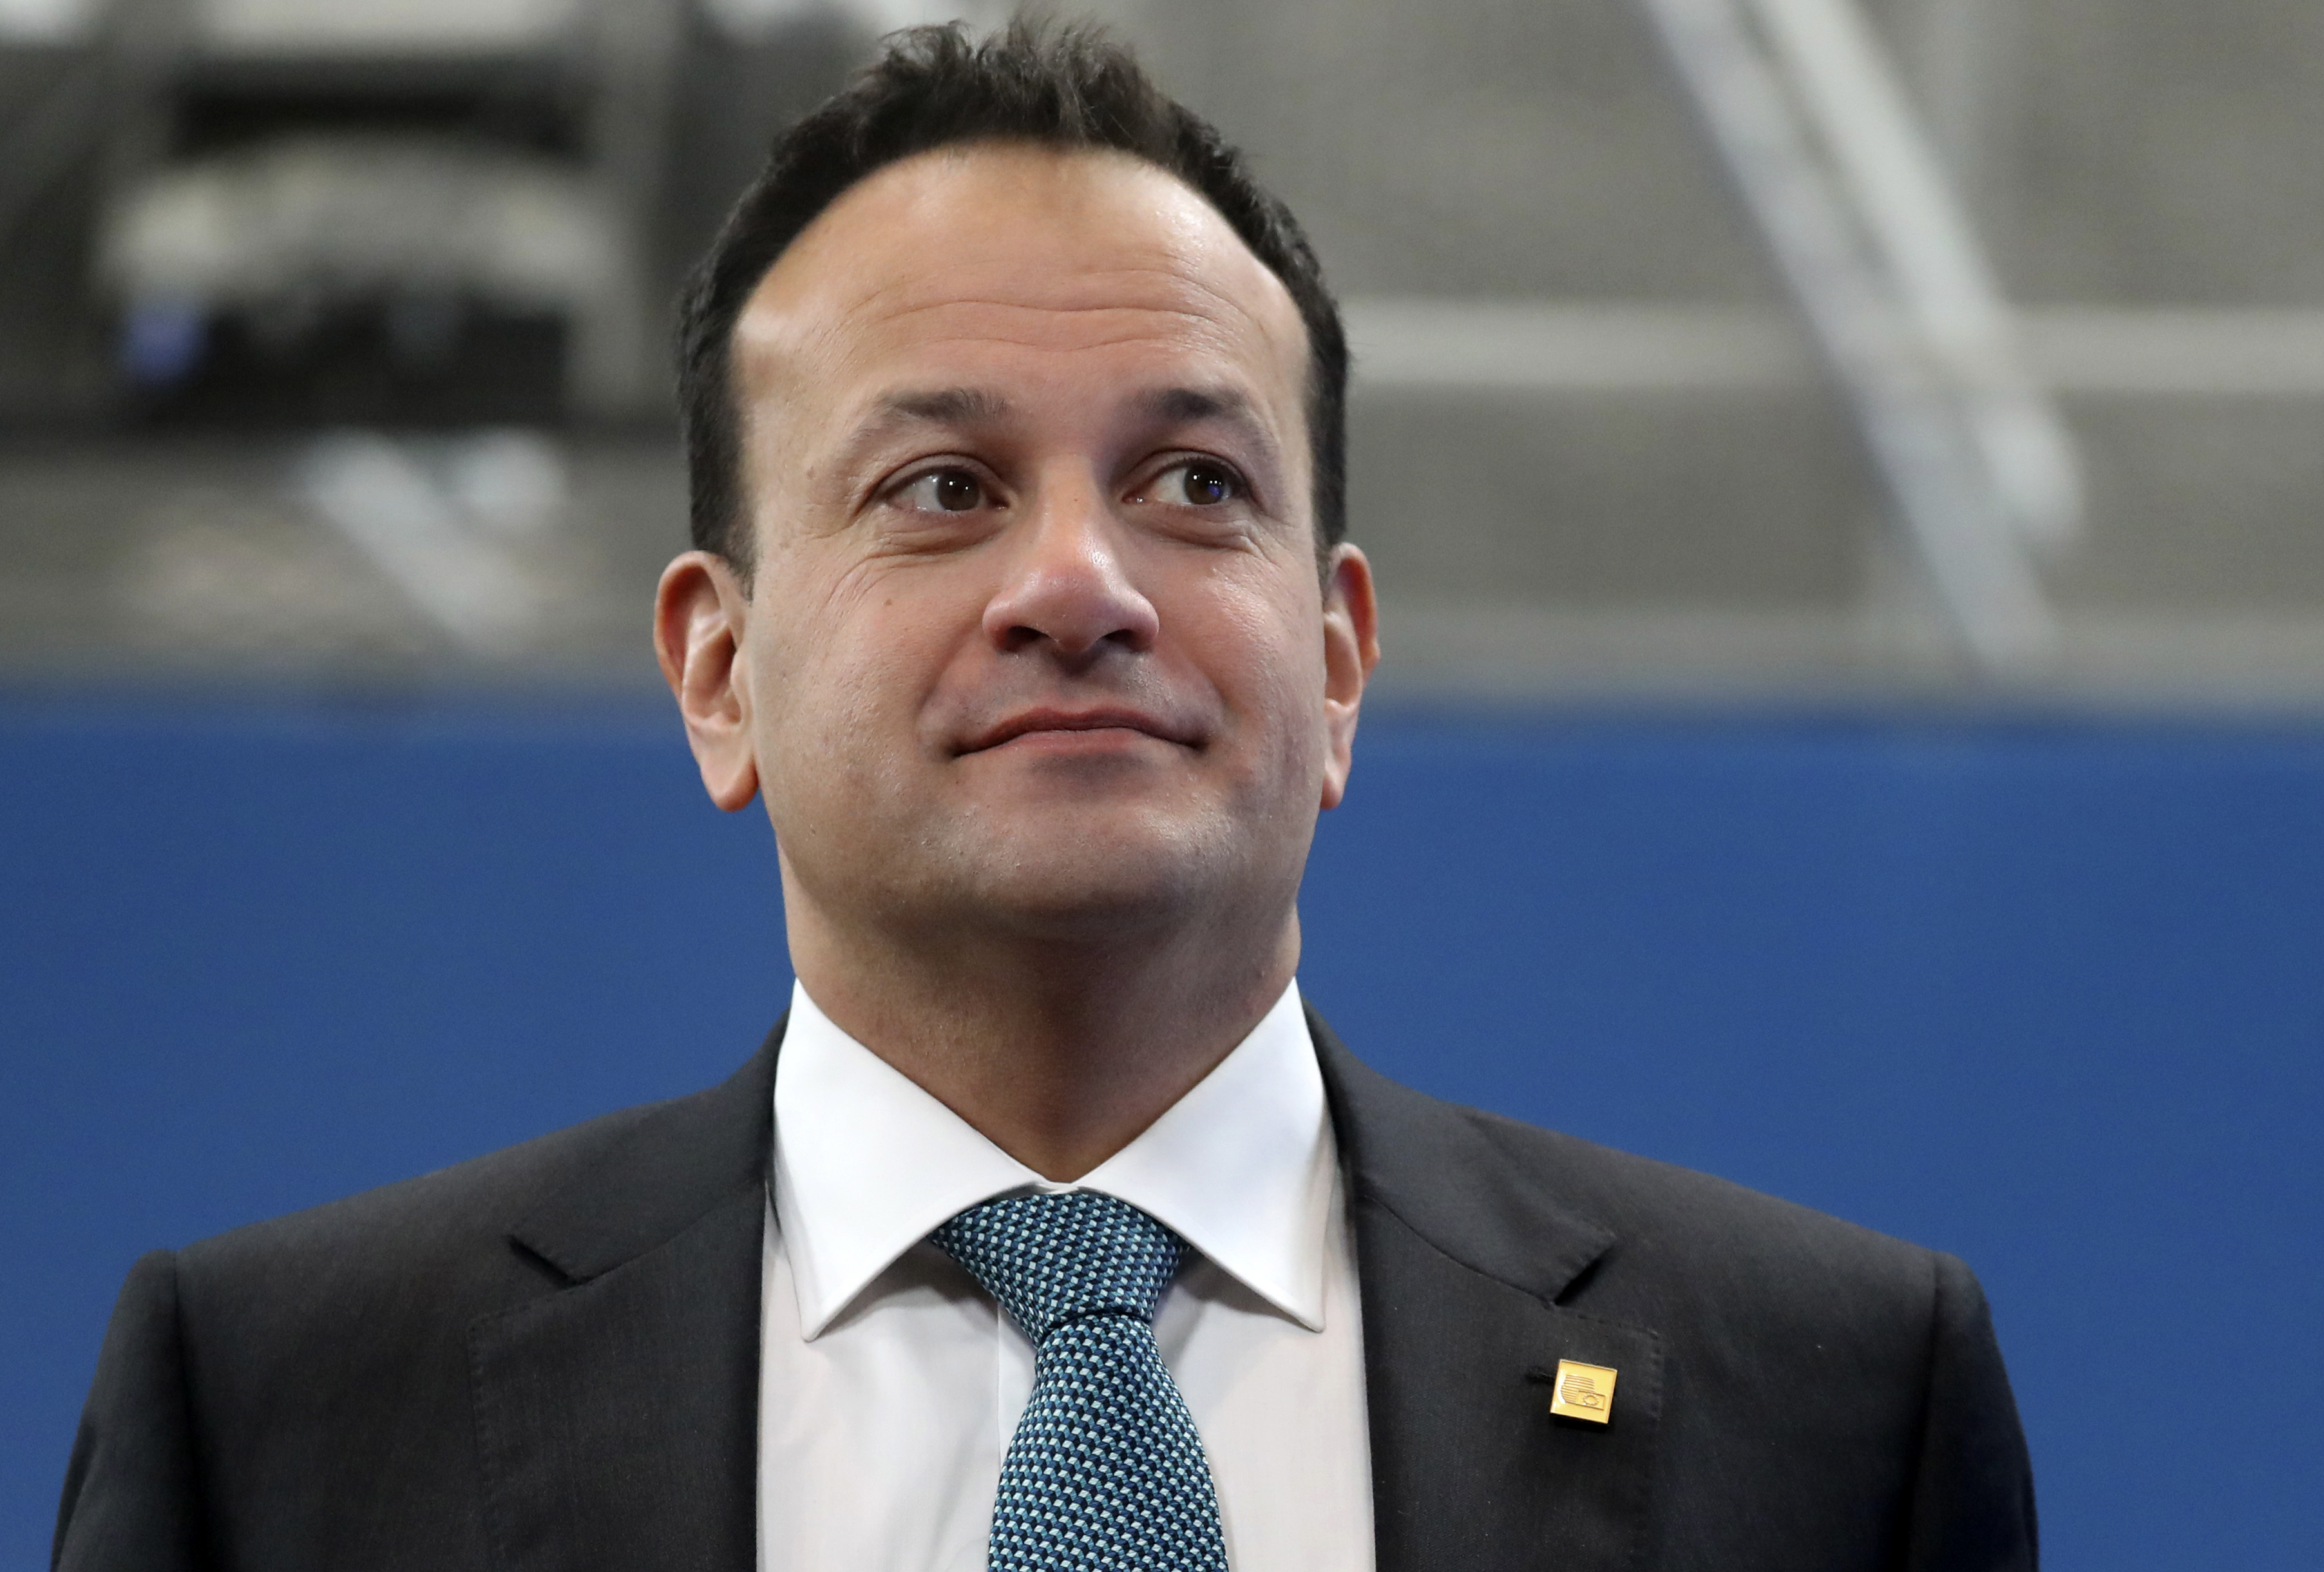 In this Friday, Feb. 21, 2020 file photo, Irish Prime Minister Leo Varadkar arrives for an EU summit at the European Council building in Brussels.